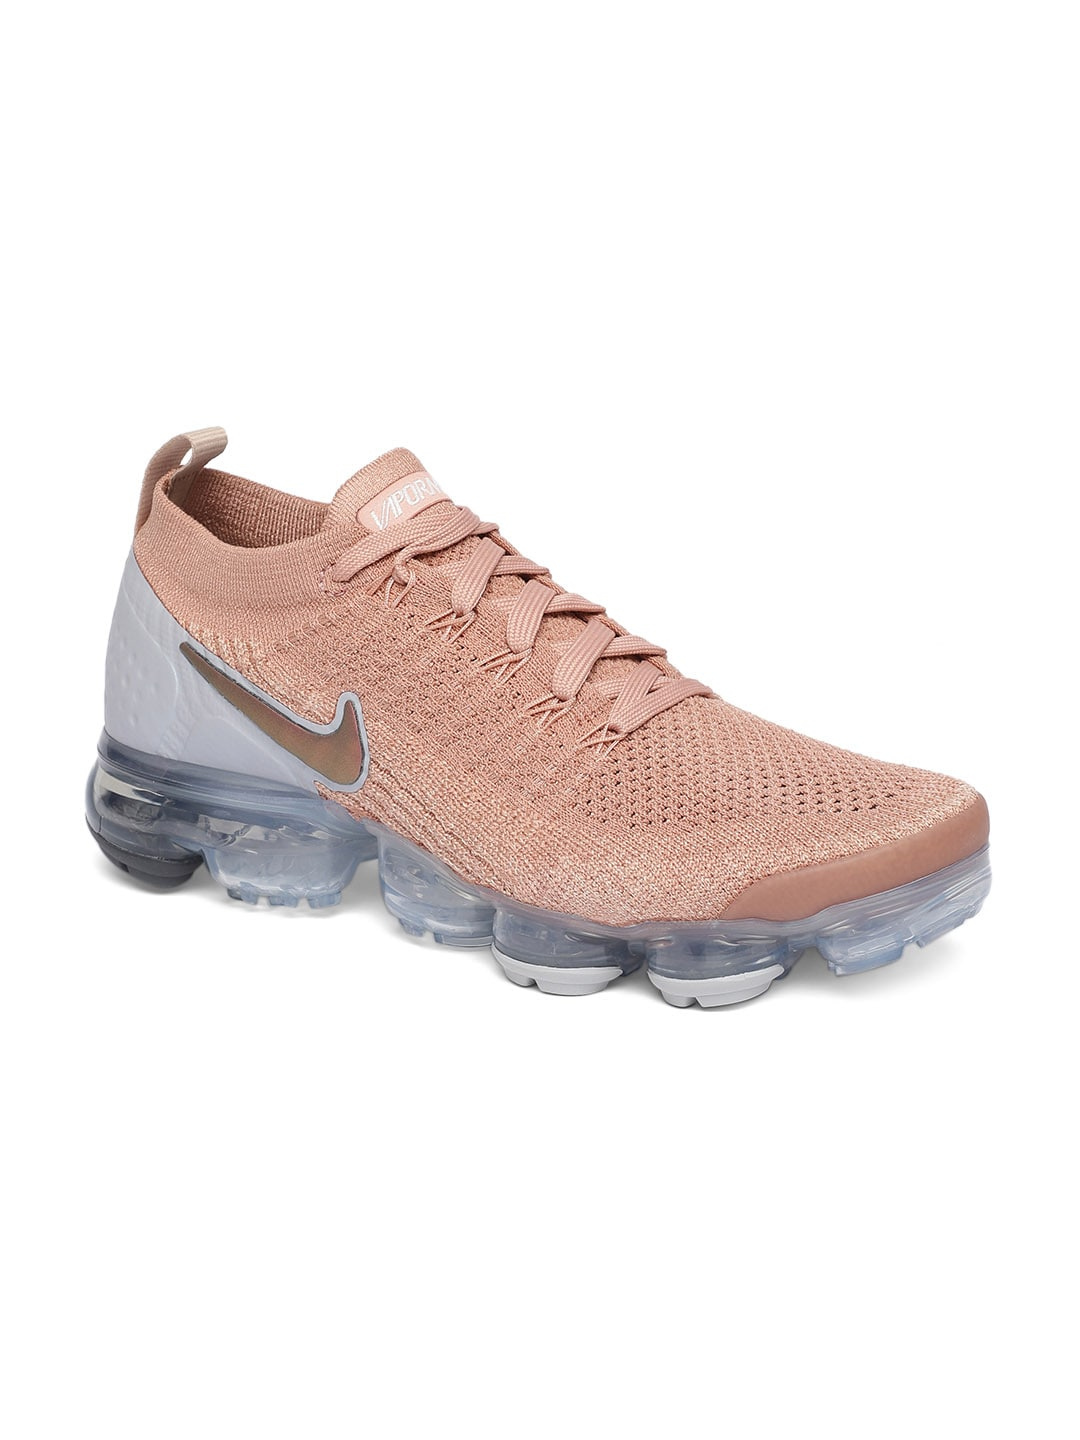 new product e60eb 1912e Nike Air Max - Buy Nike Air Max Shoes, Bags, Sneakers in India